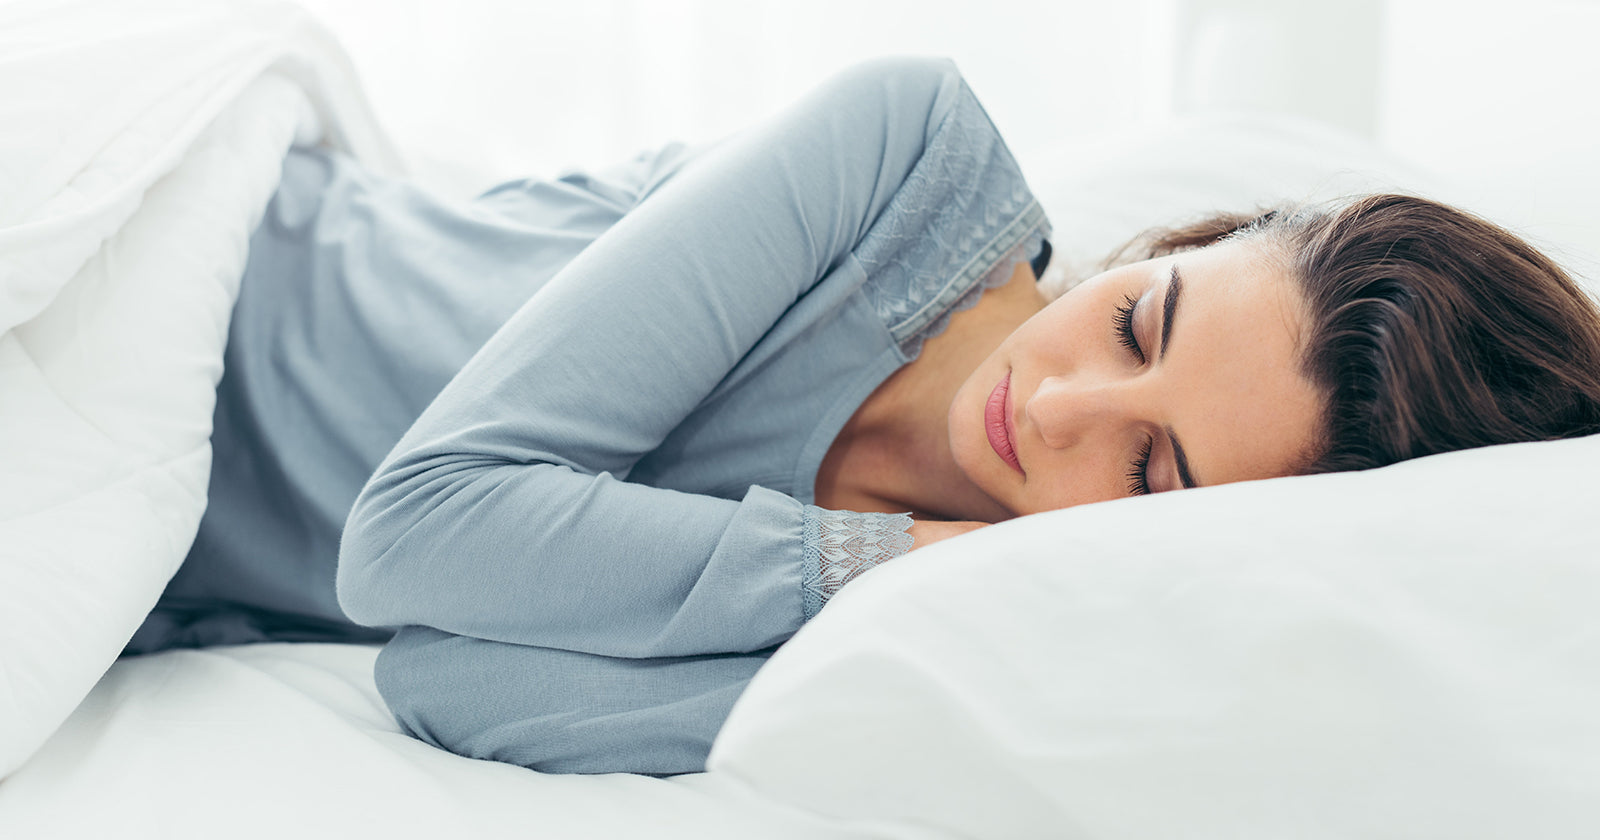 Women with blue top on asleep in bed on her side